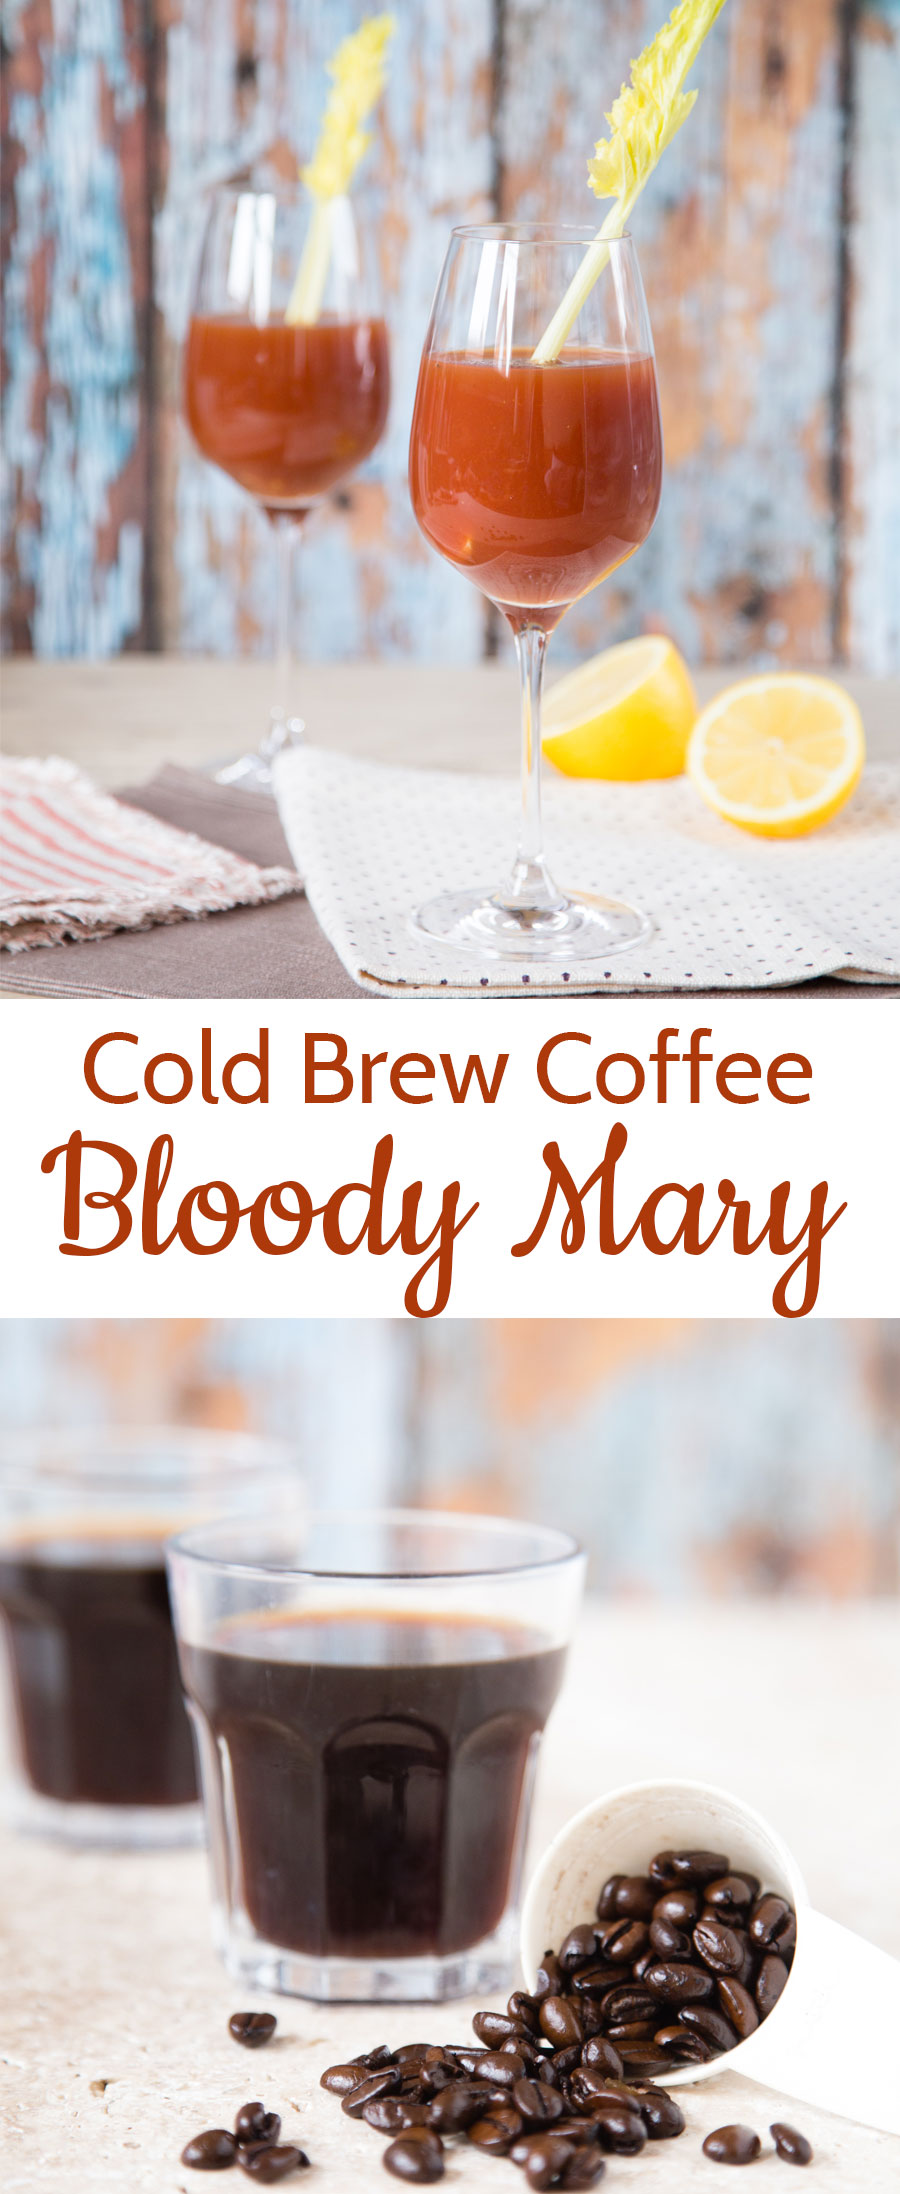 An astonishingly good combination of cold brew coffee and tomato juice - think of it as a grown up energy drink for the sophisticated palate.